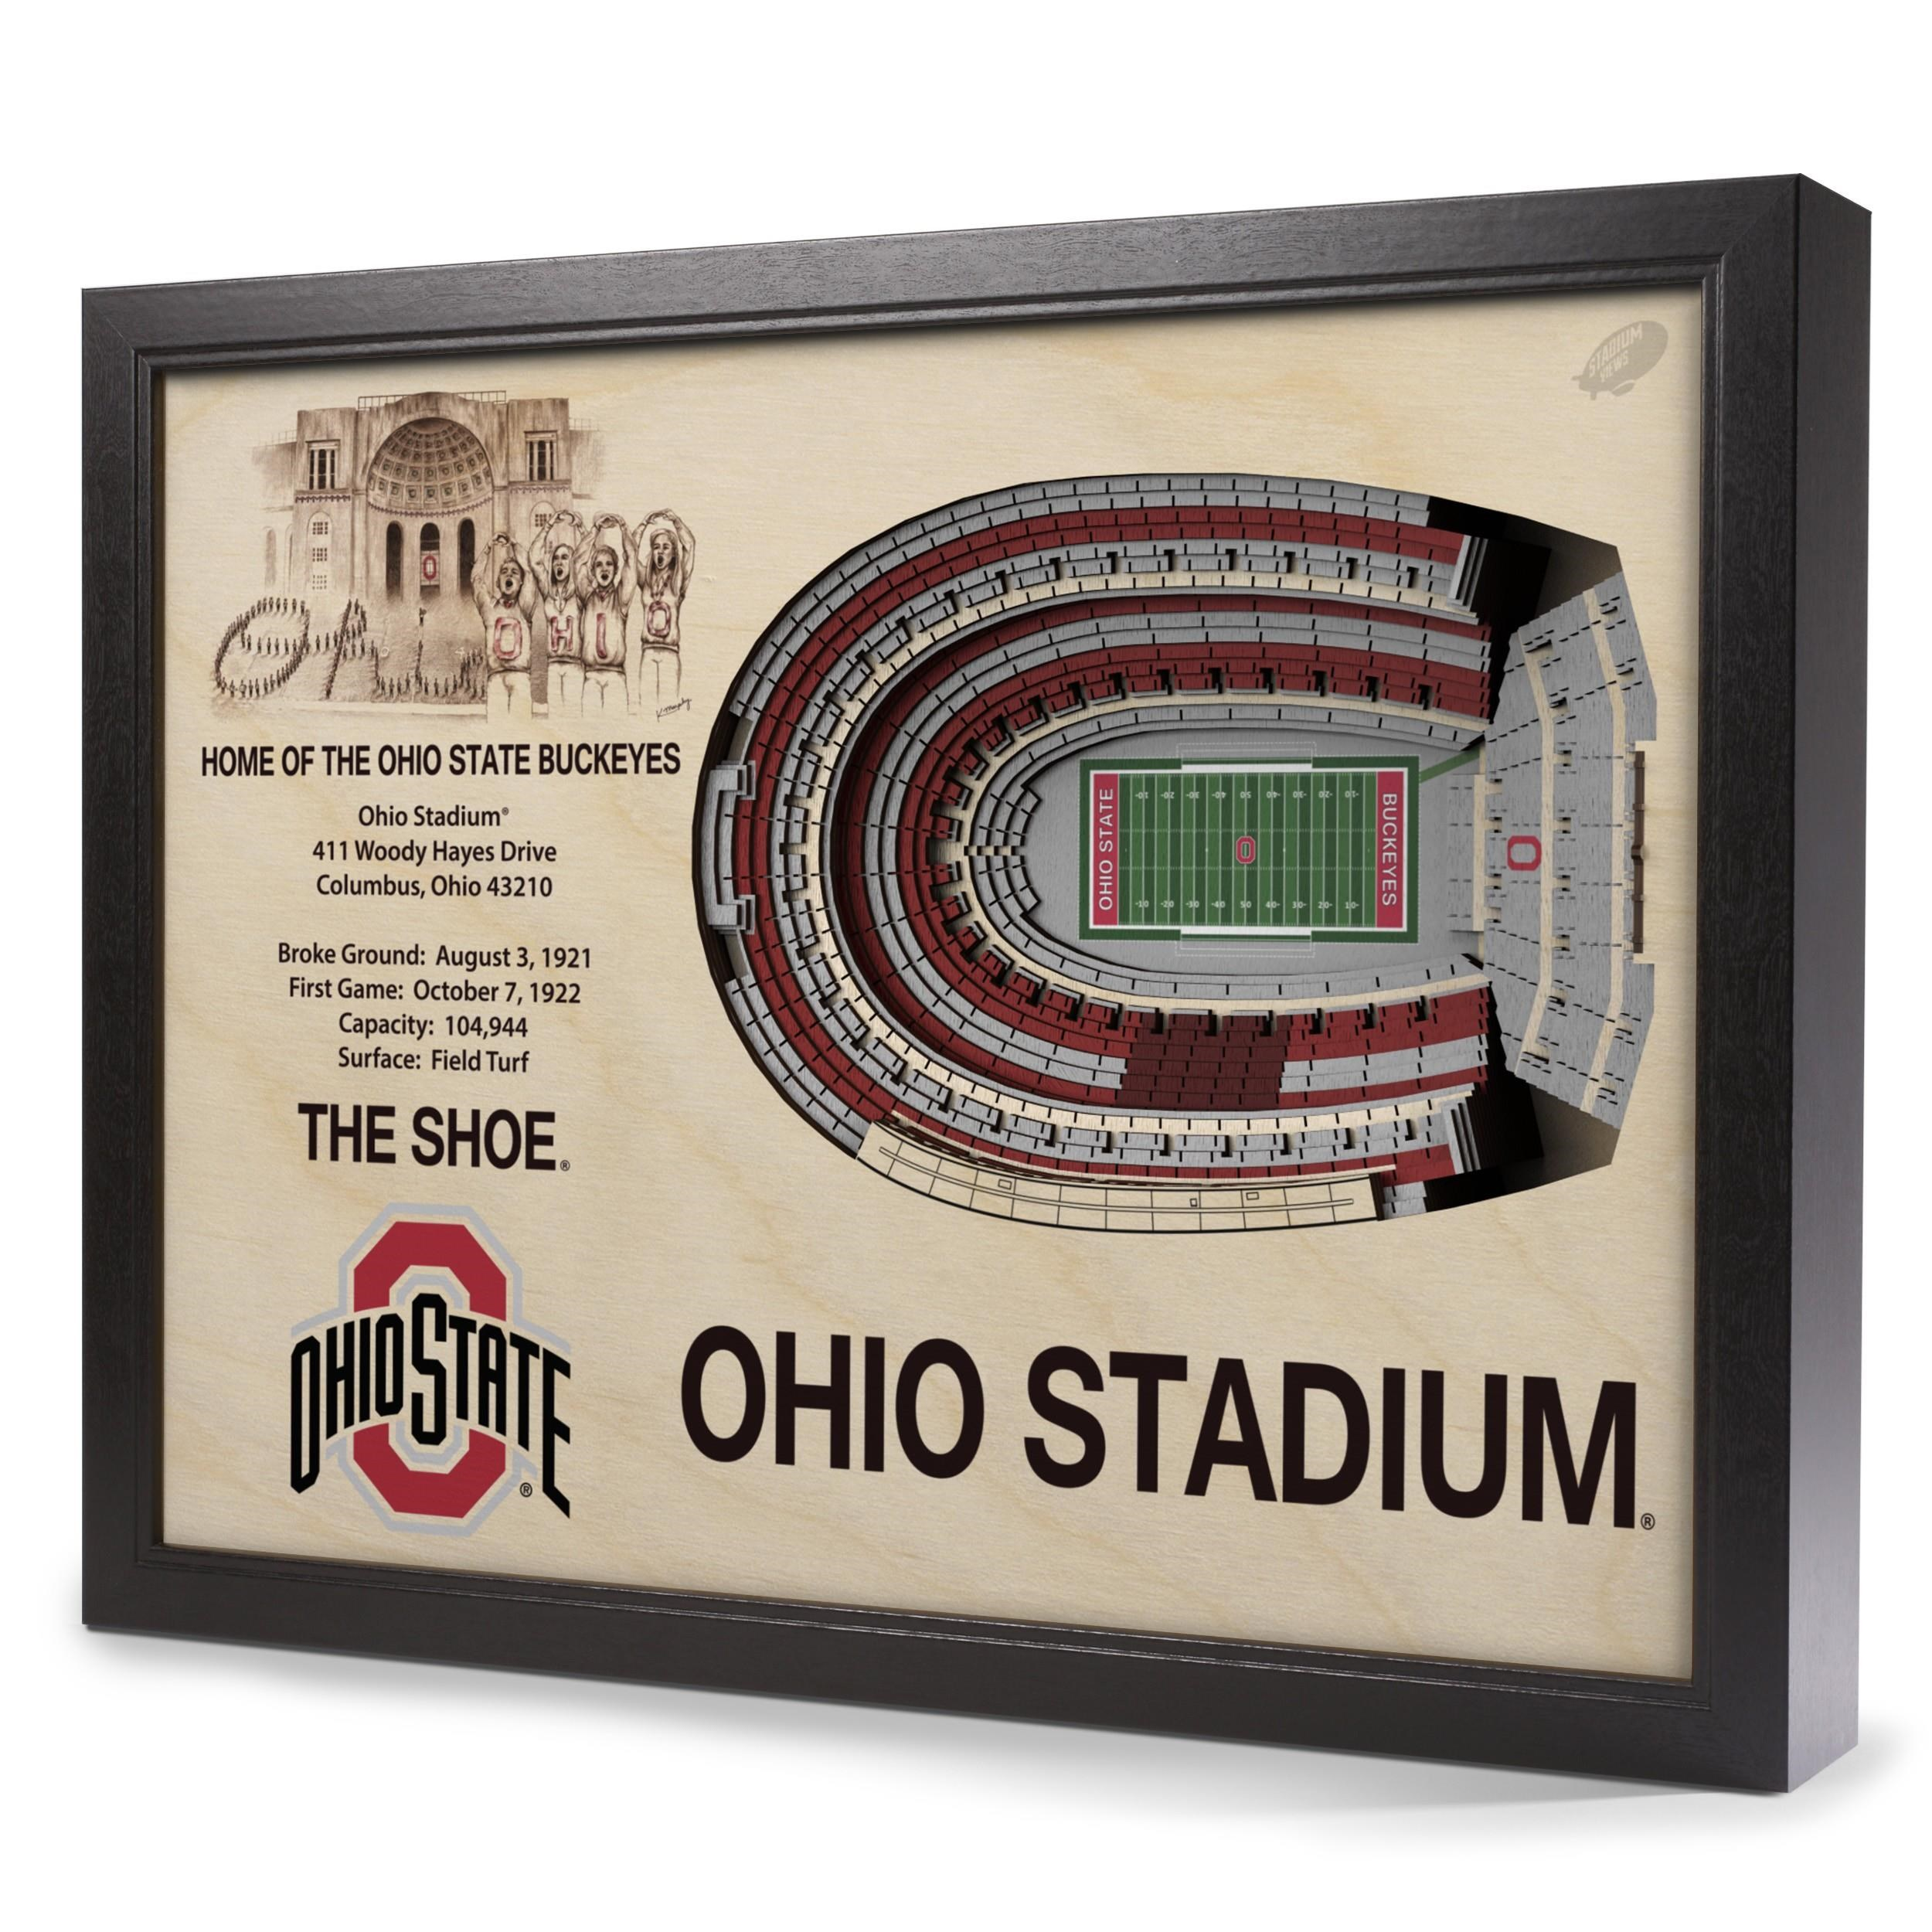 Wall Art OHIO STATE BUCKEYES STADIUMVIEW 3D WALL ART by StadiumViews at Westrich Furniture & Appliances